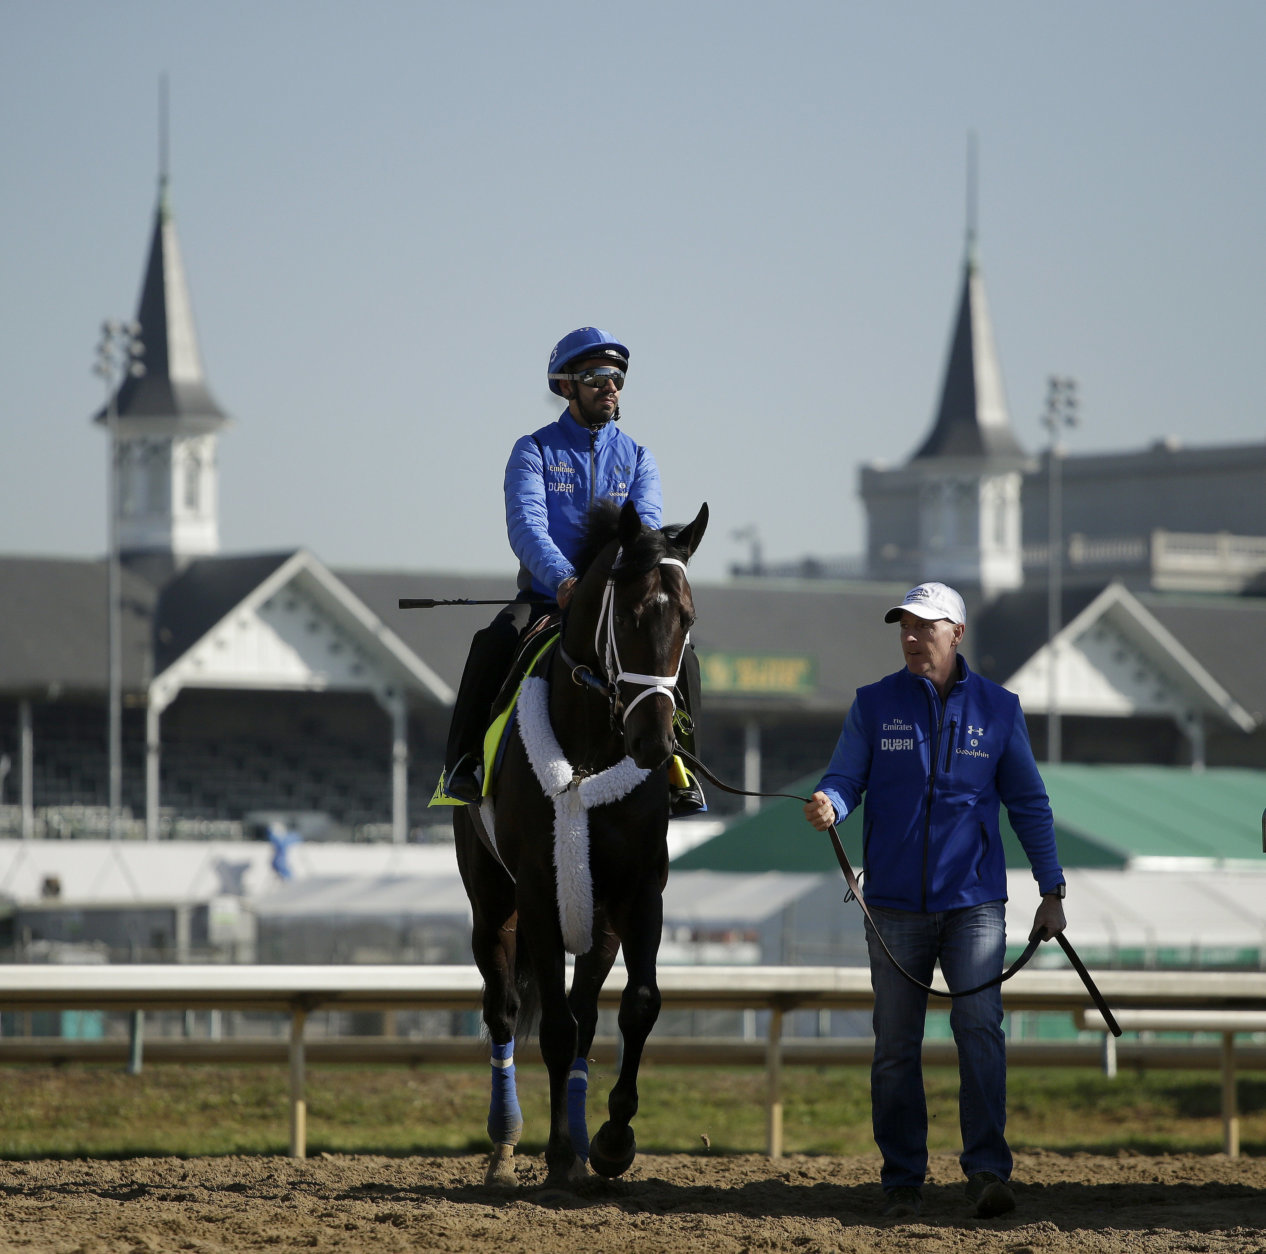 Kentucky Derby hopeful Enticed is led off the track after a morning workout at Churchill Downs Tuesday, May 1, 2018, in Louisville, Ky. The 144th running of the Kentucky Derby is scheduled for Saturday, May 5. (AP Photo/Charlie Riedel)